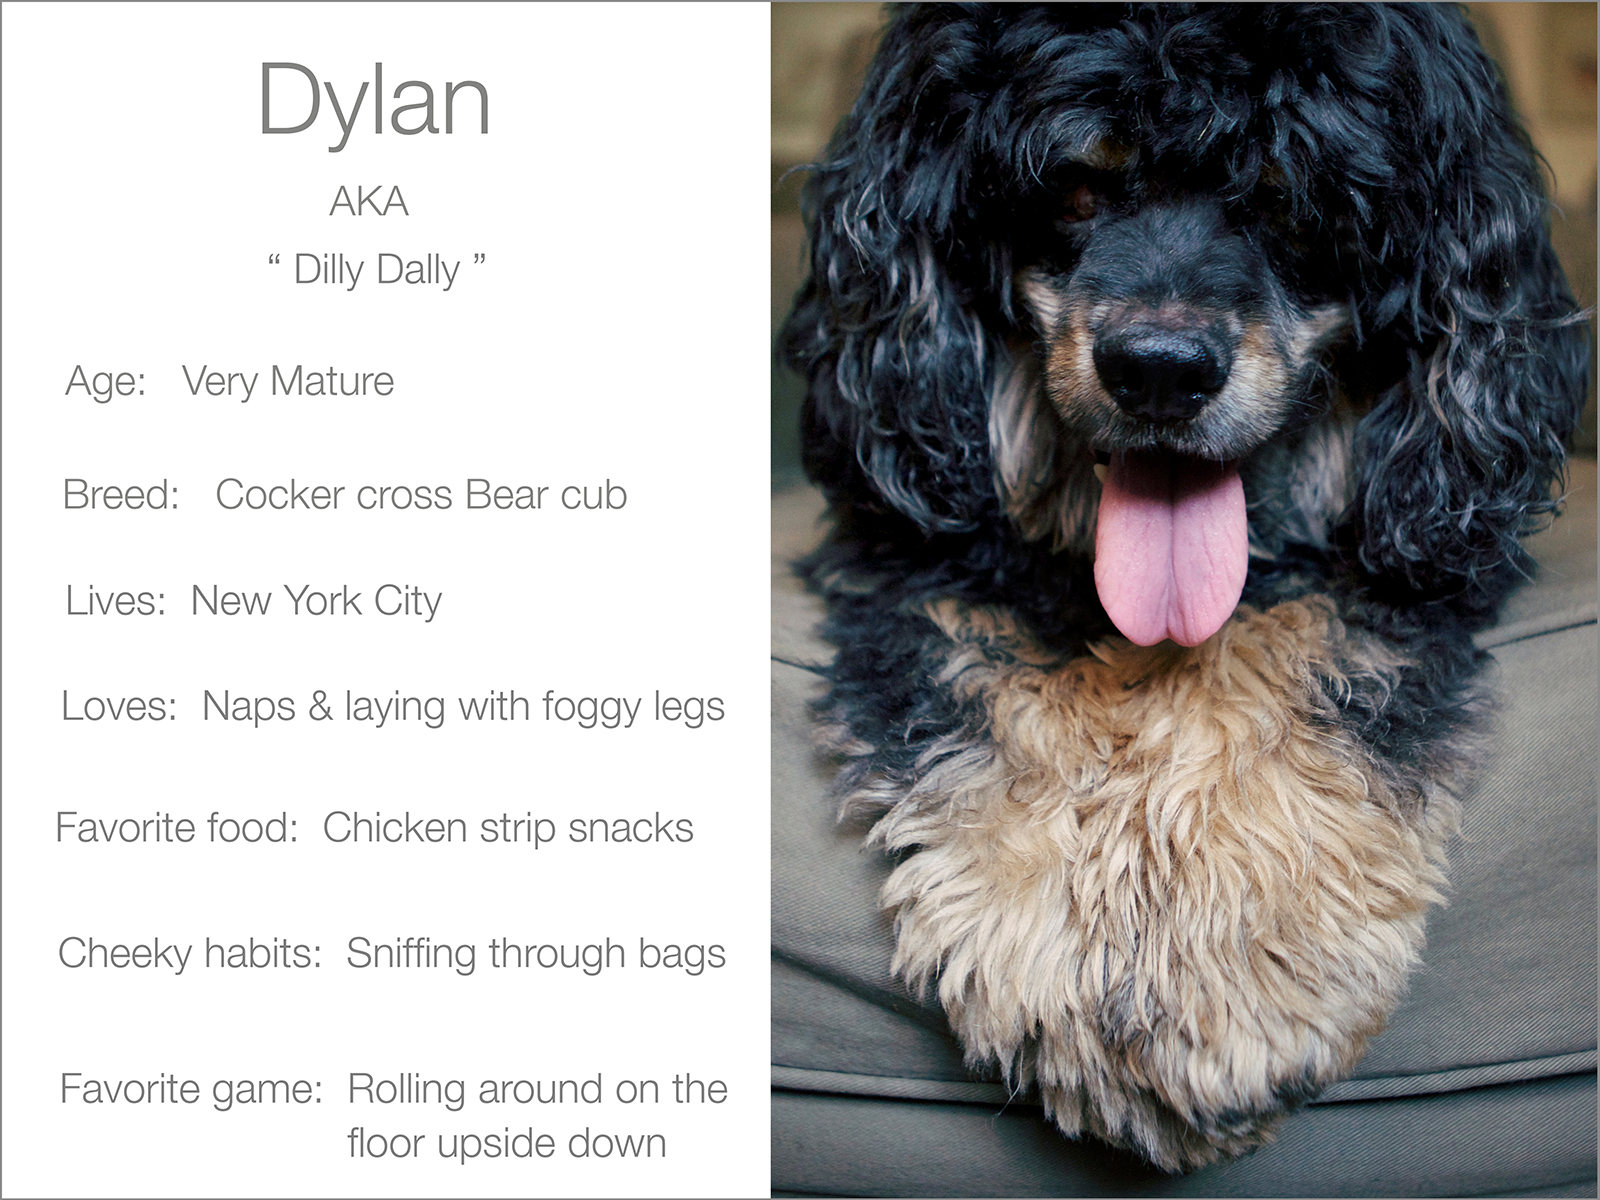 Grey Dylan blurb